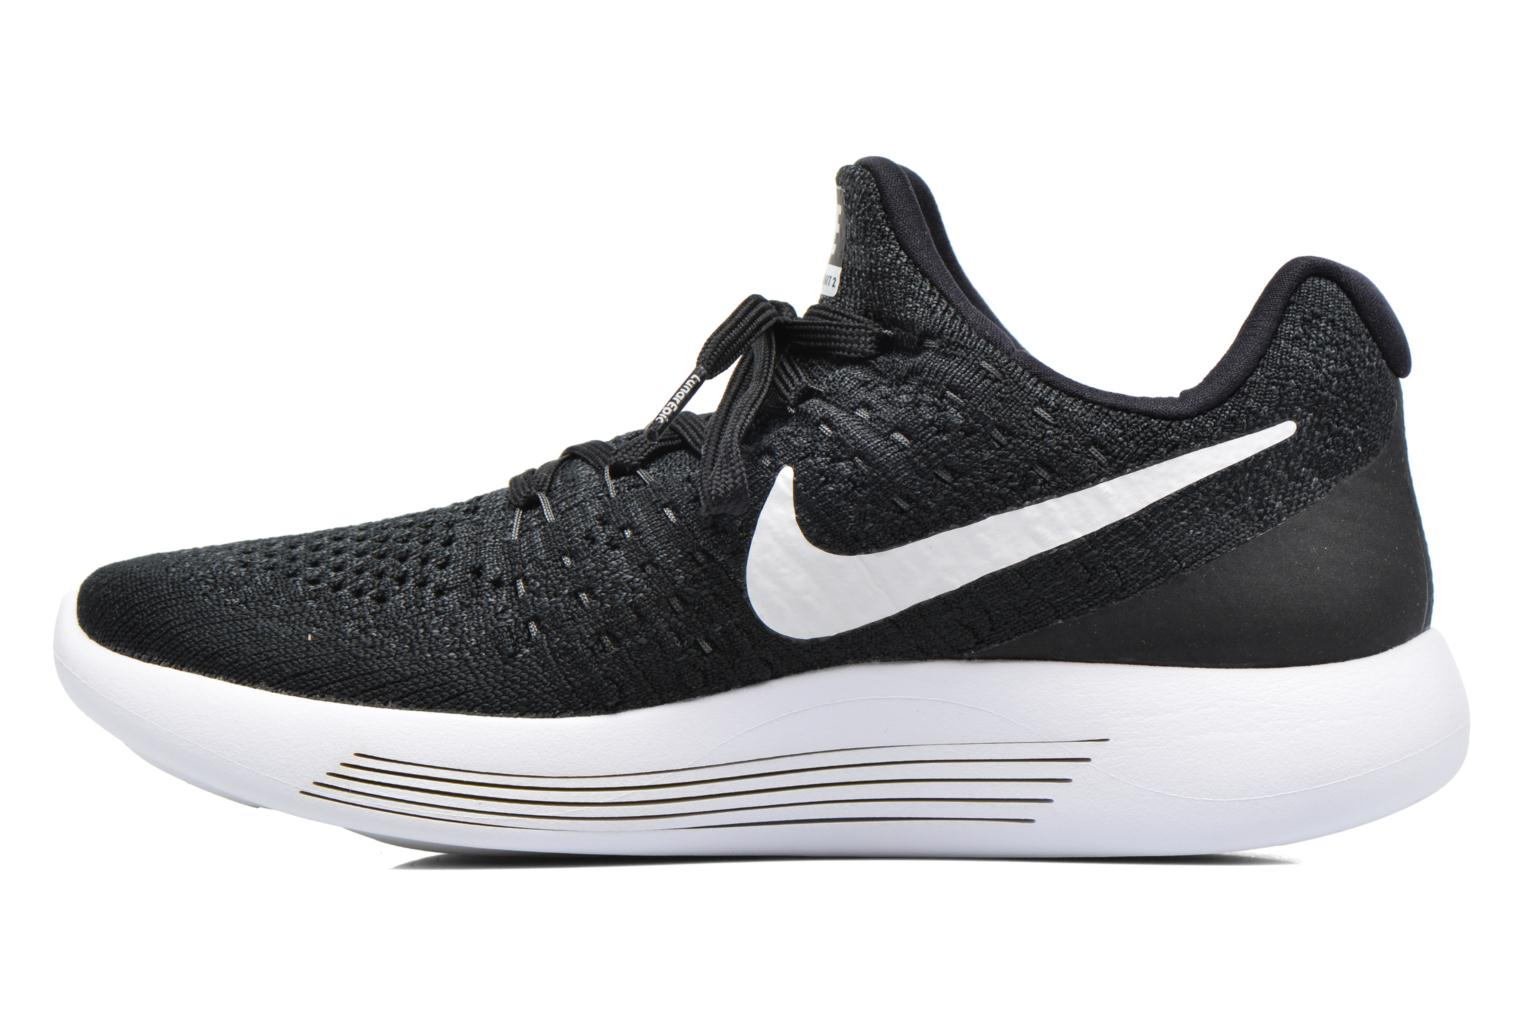 W Nike Lunarepic Low Flyknit 2 Black/white-anthracite